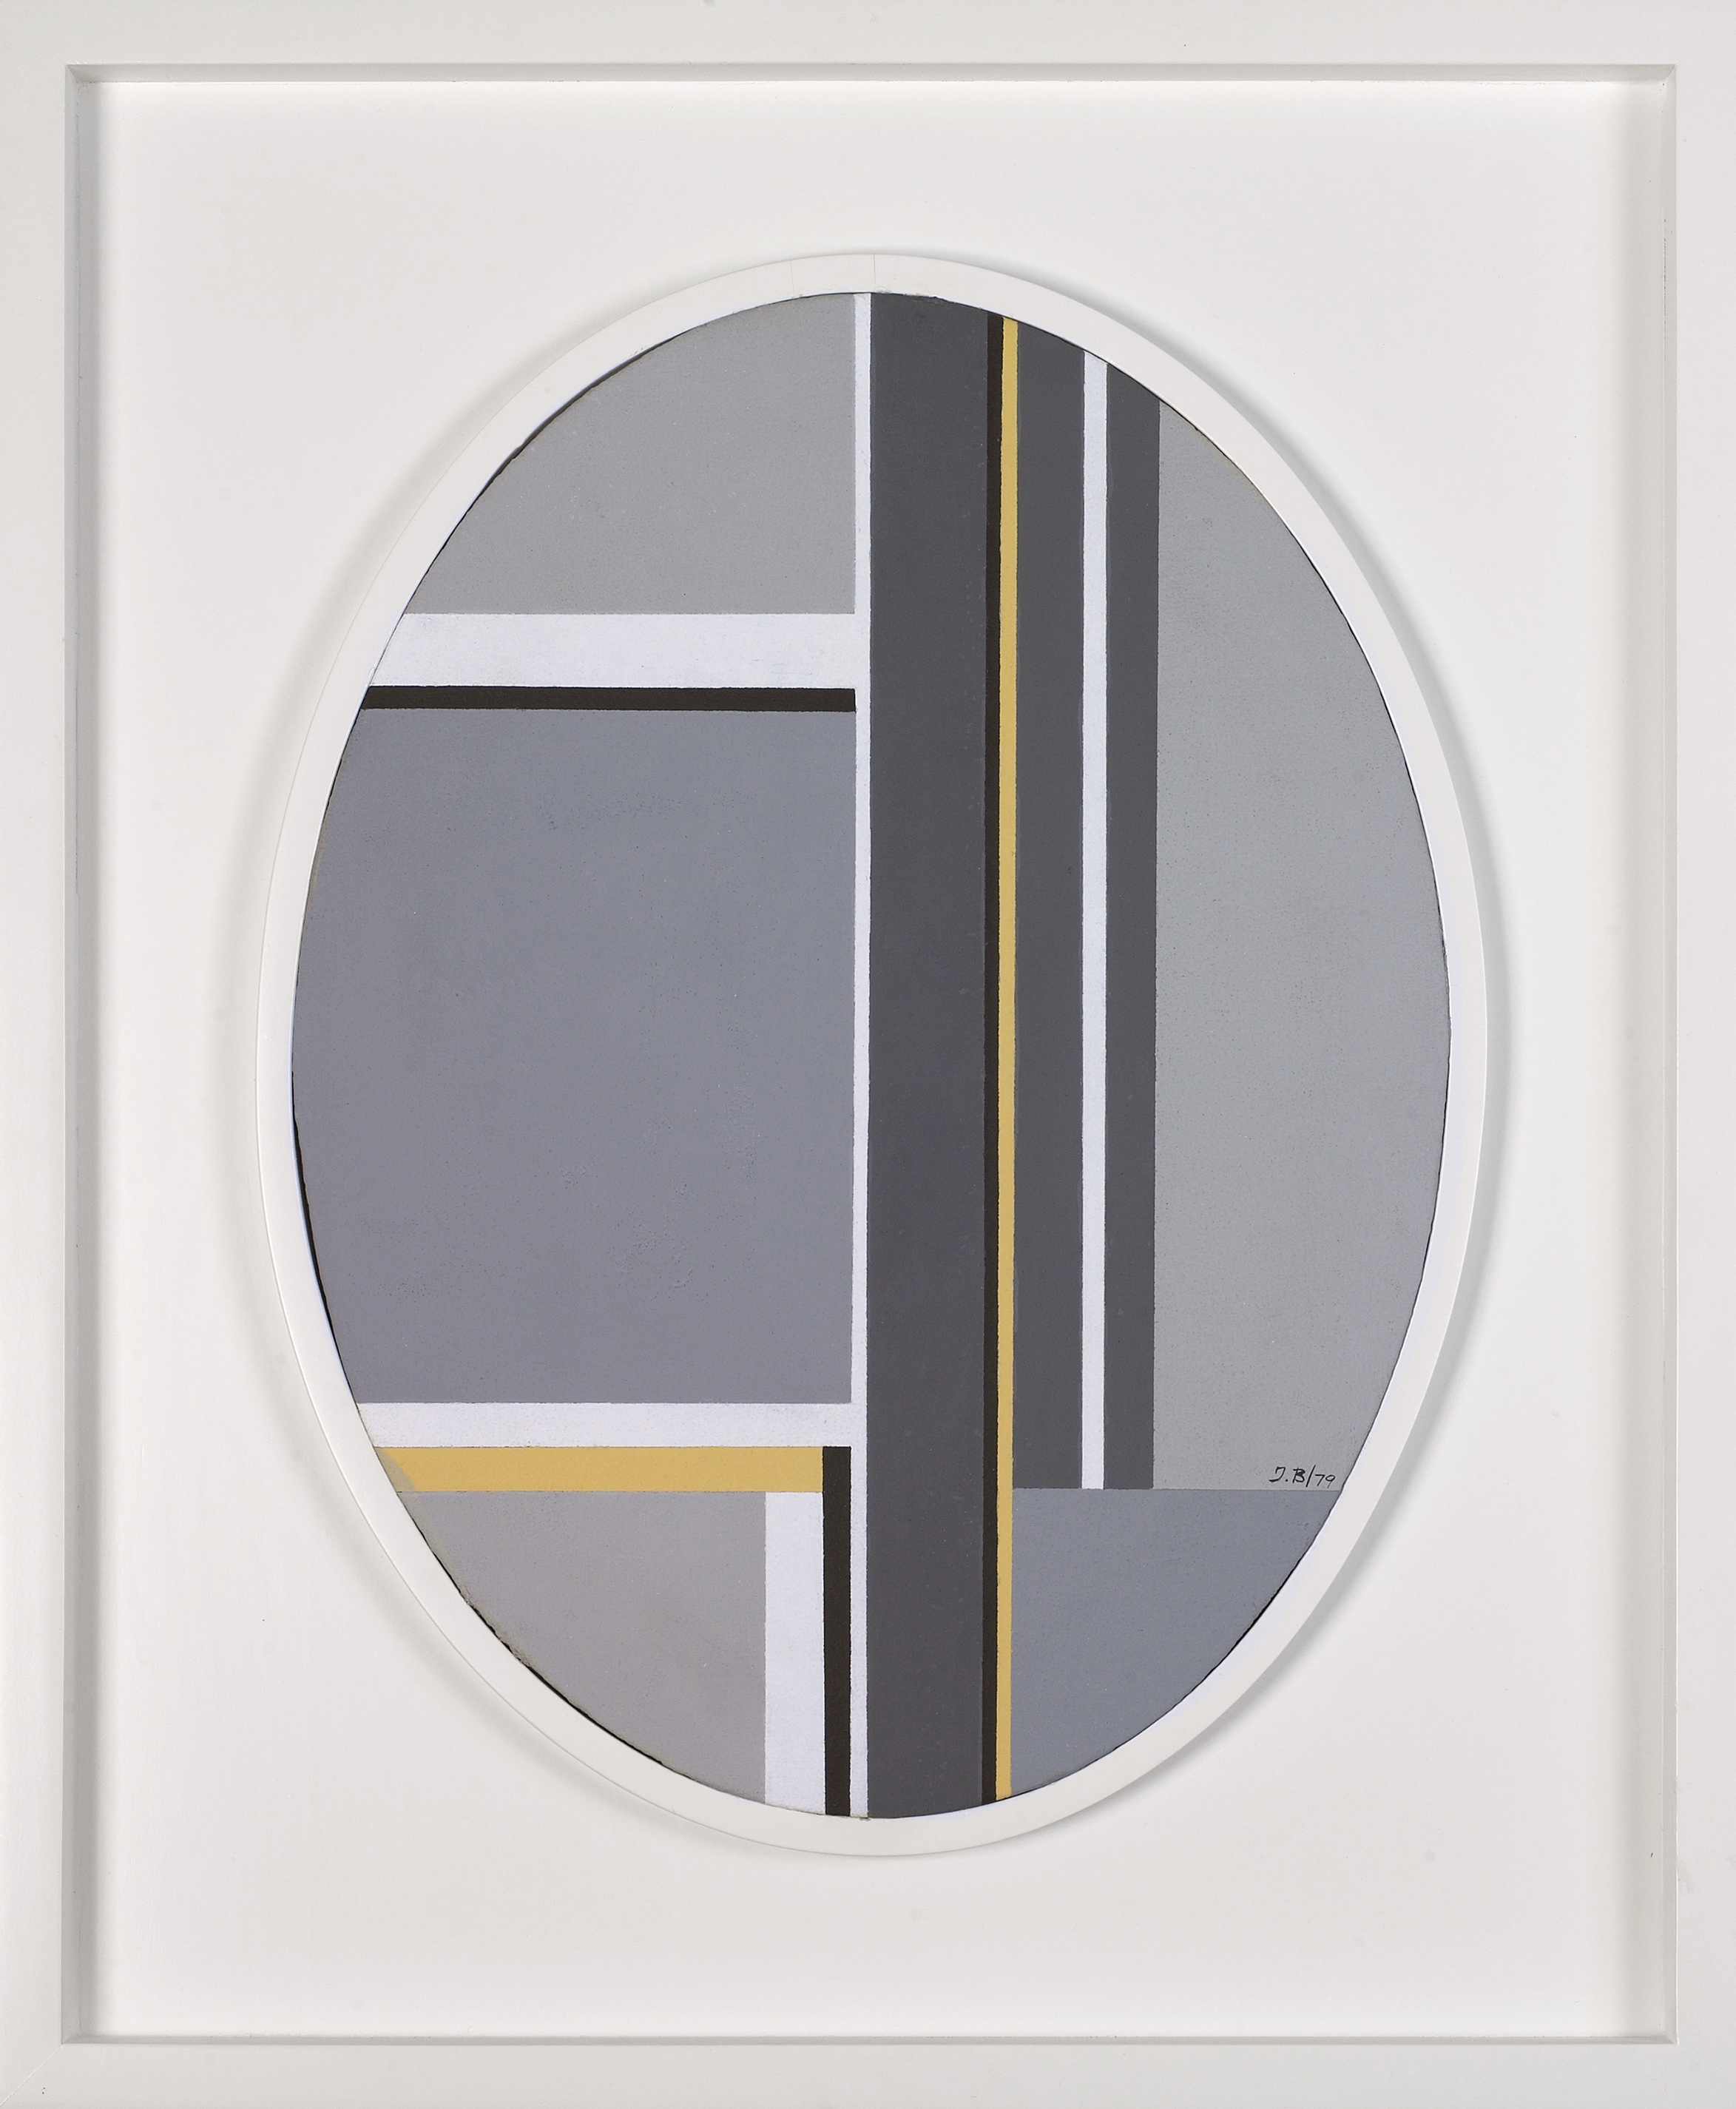 Untitled,   Oil on canvas, 1979, 15 3/4 x 11 3/4 inches